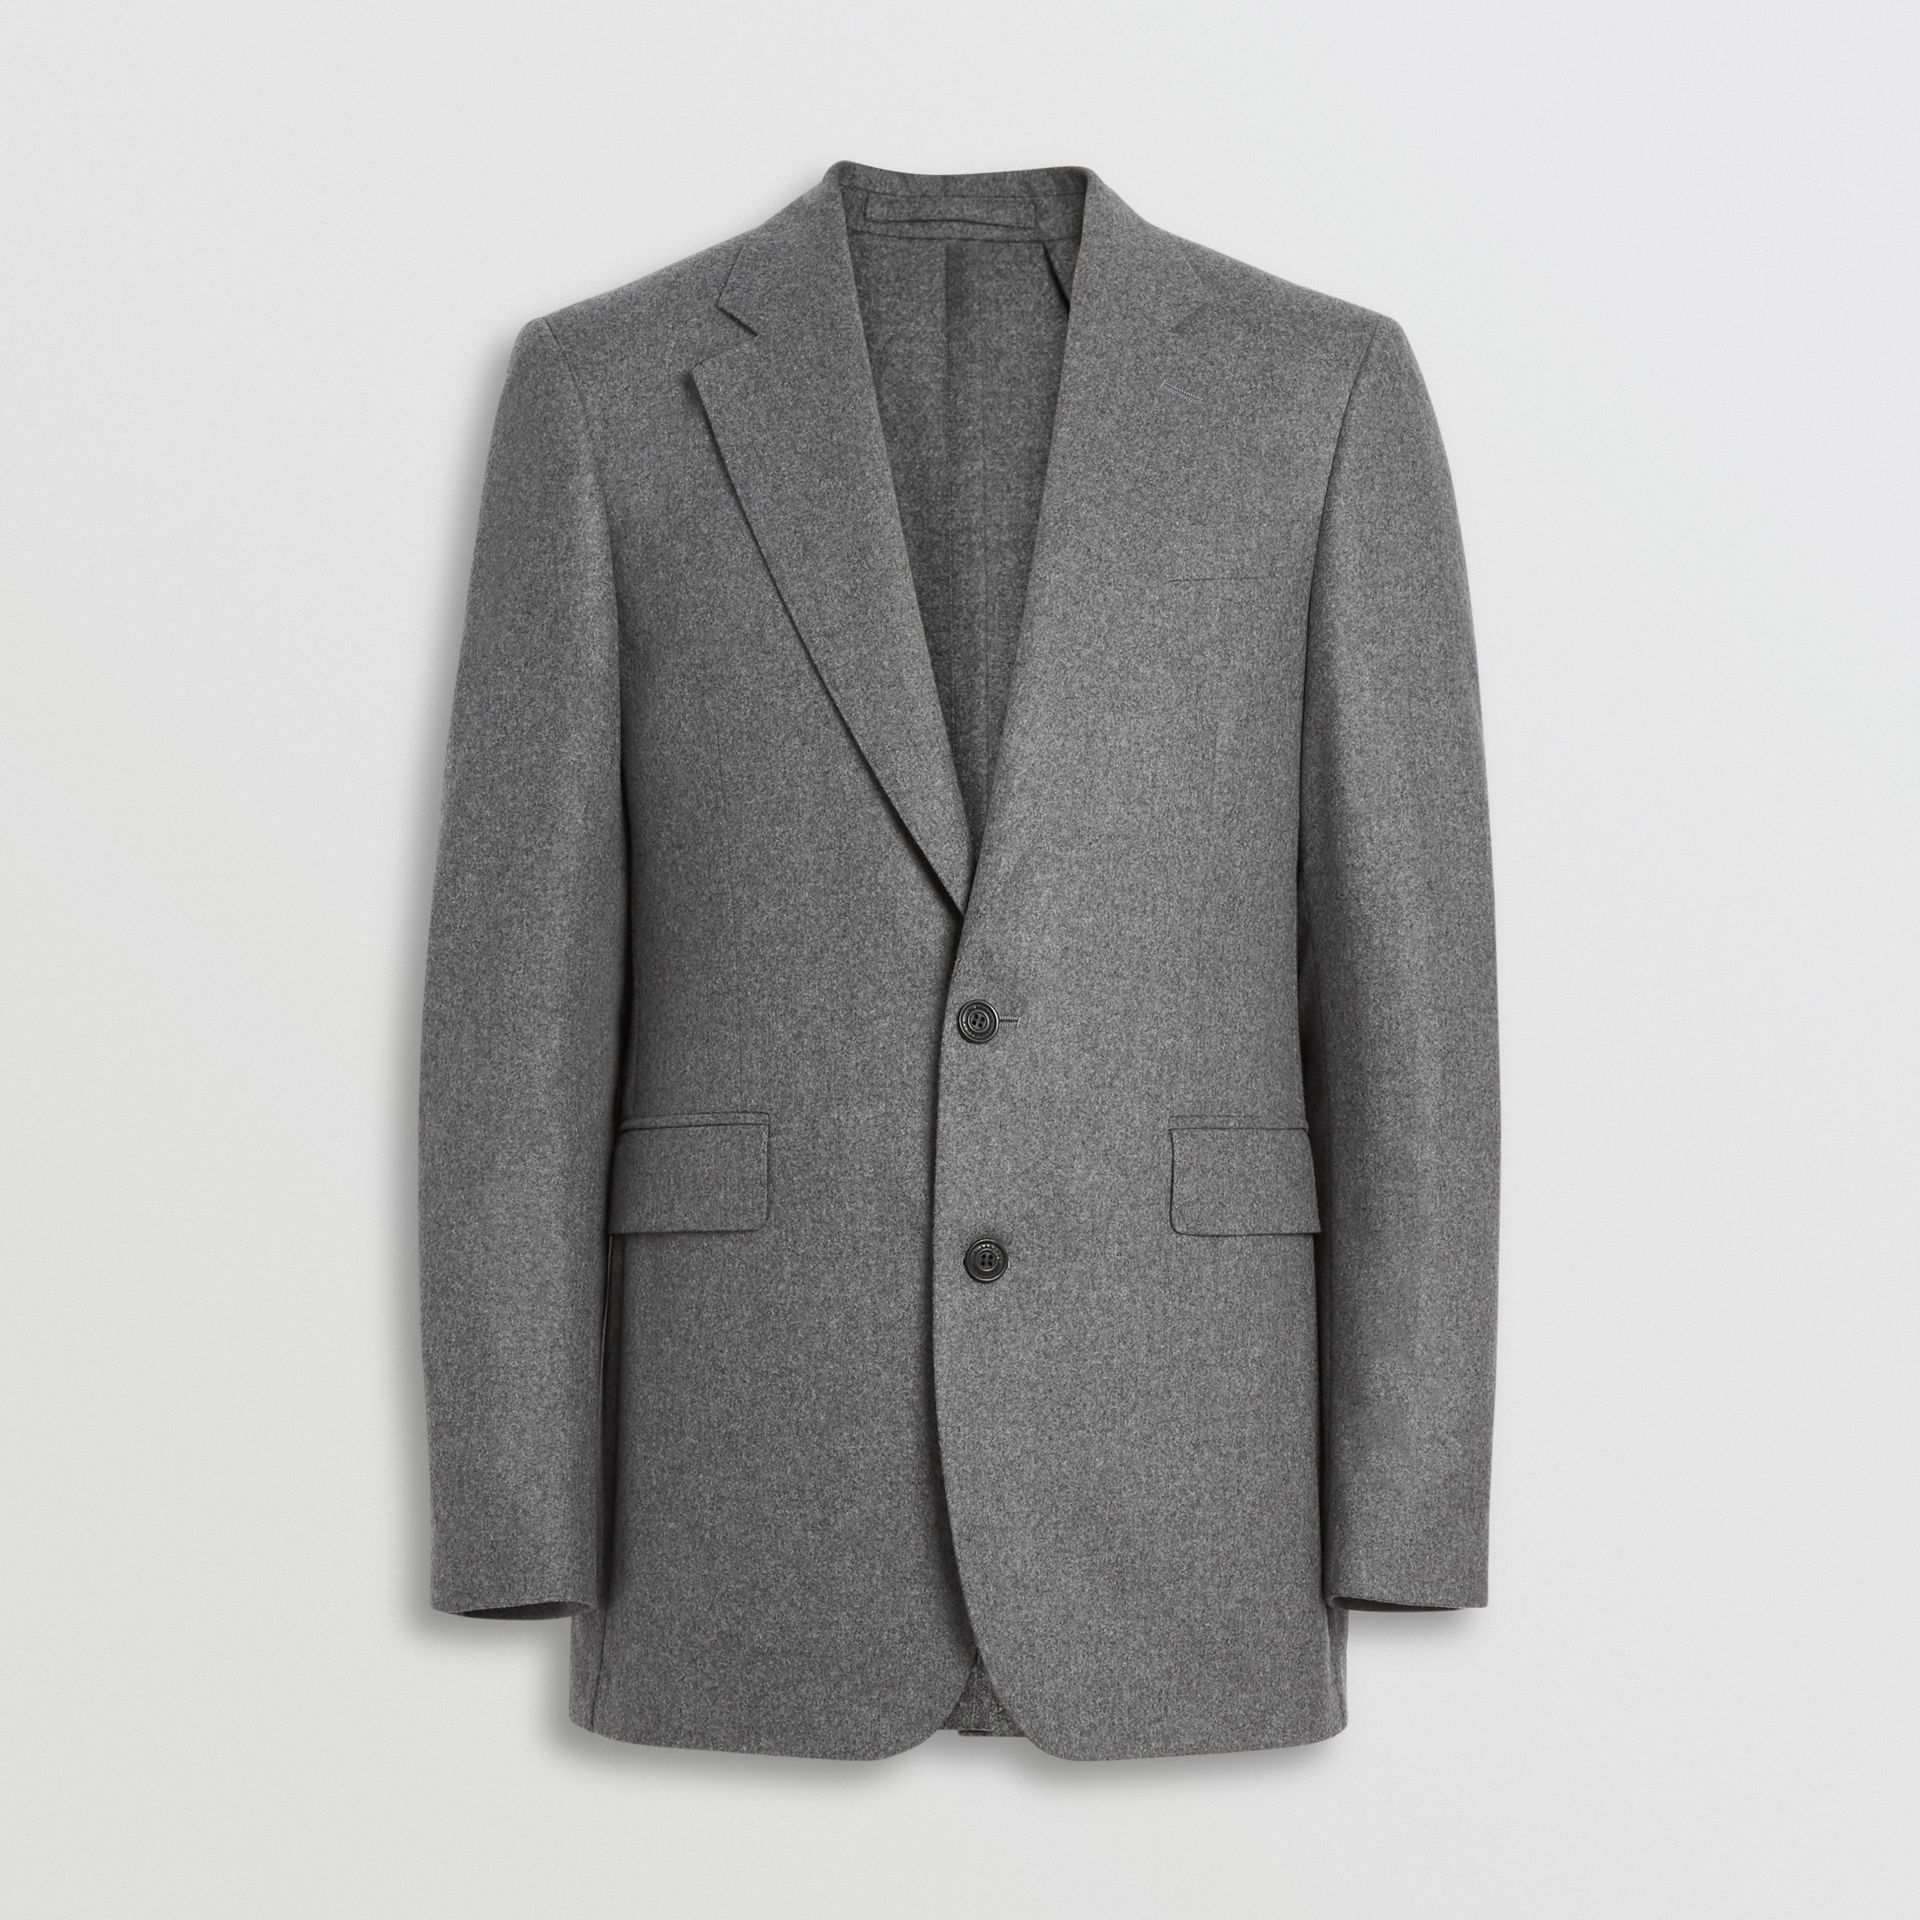 Classic Fit Wool Cashmere Tailored Jacket in Mid Grey Melange - Men | Burberry Canada - gallery image 3